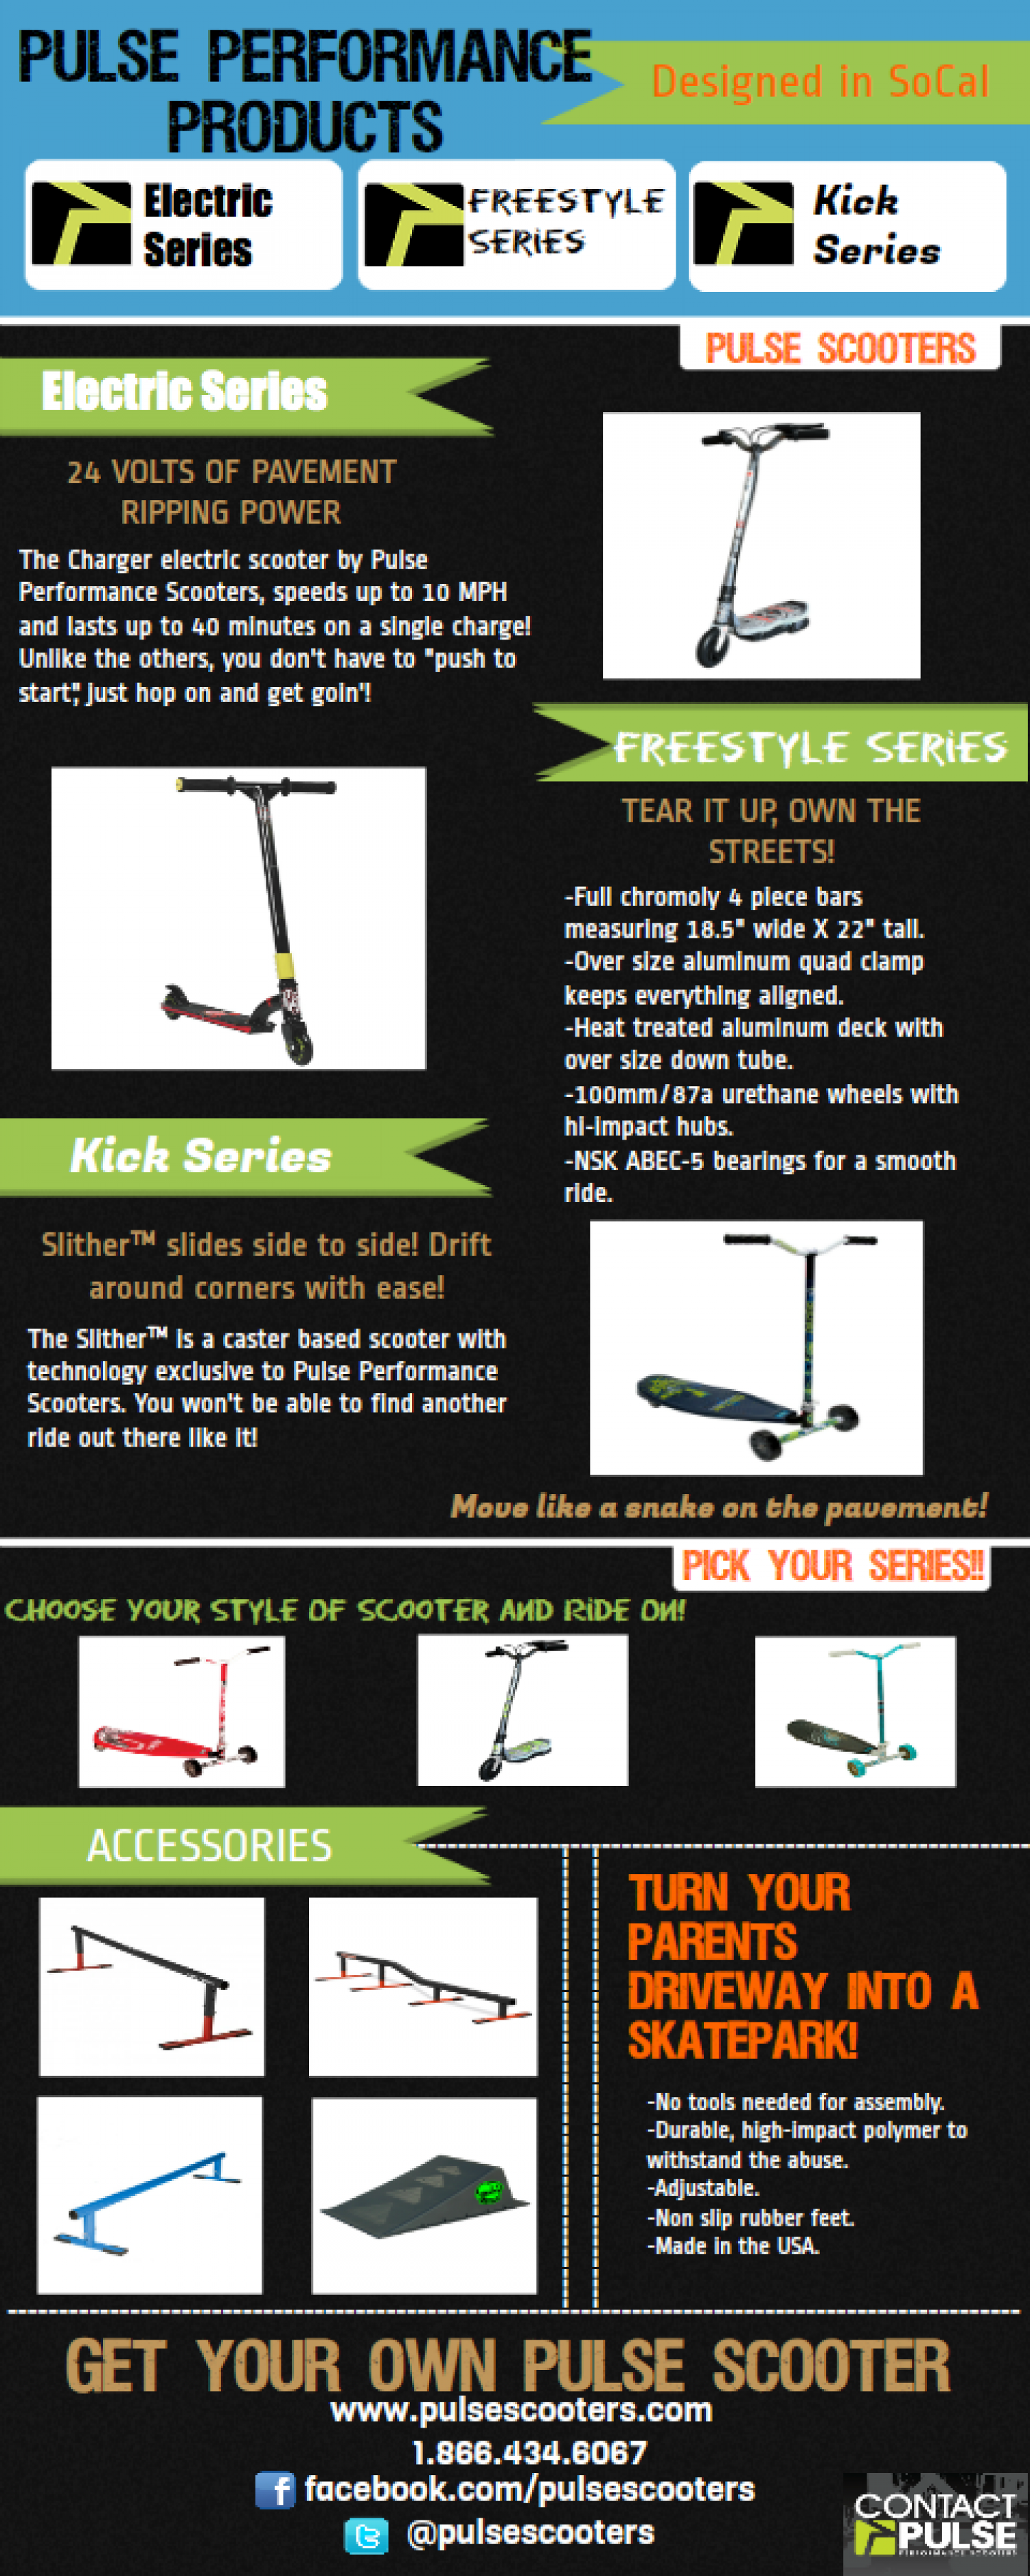 Pulse Scooters Infographic